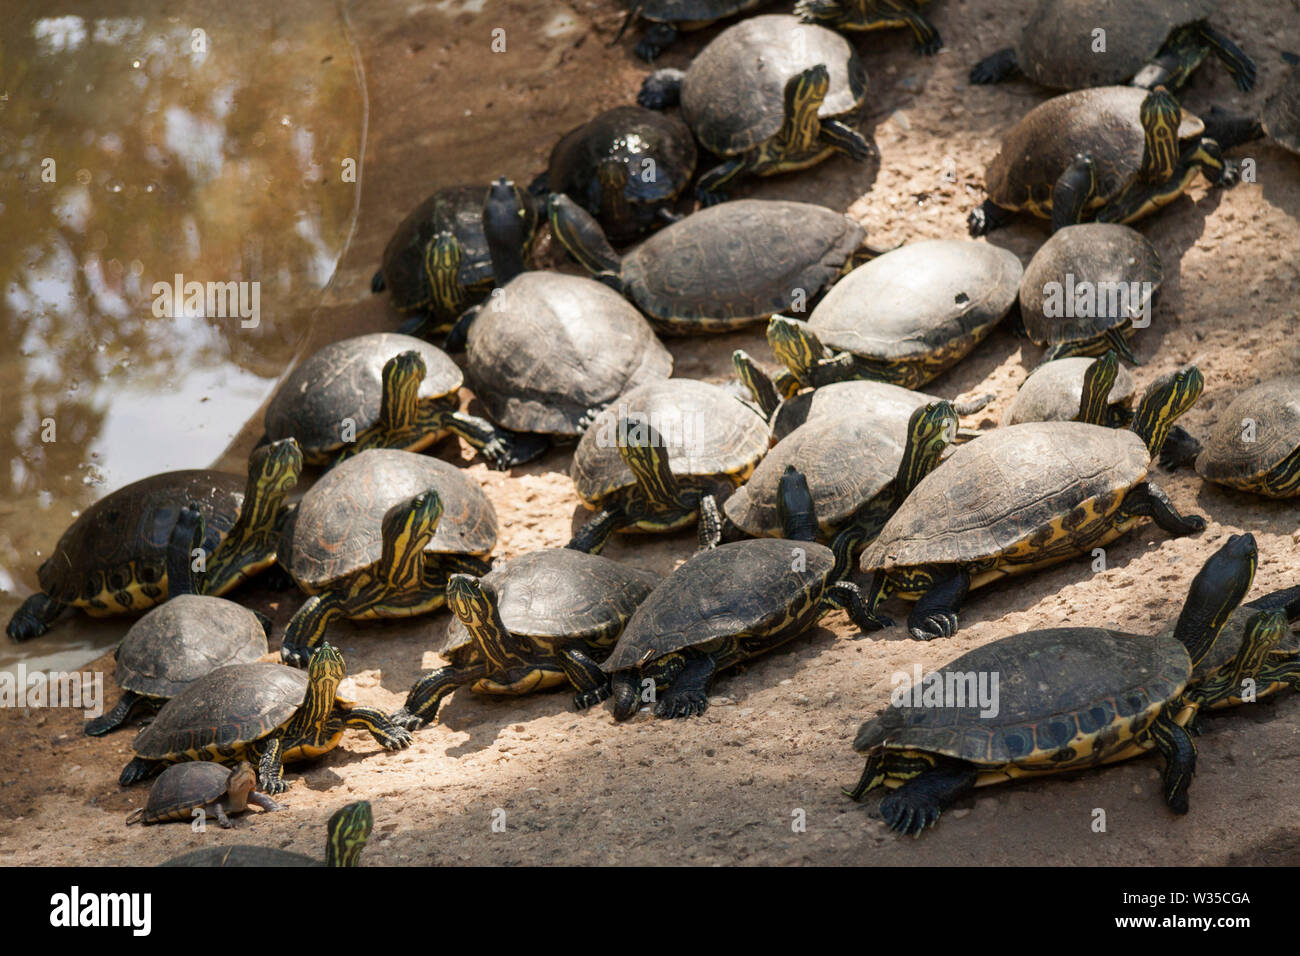 Emydidae Turtles grouped in a sandy place. in La Venta Park. Villahermosa,Tabasco,Mexico. - Stock Image